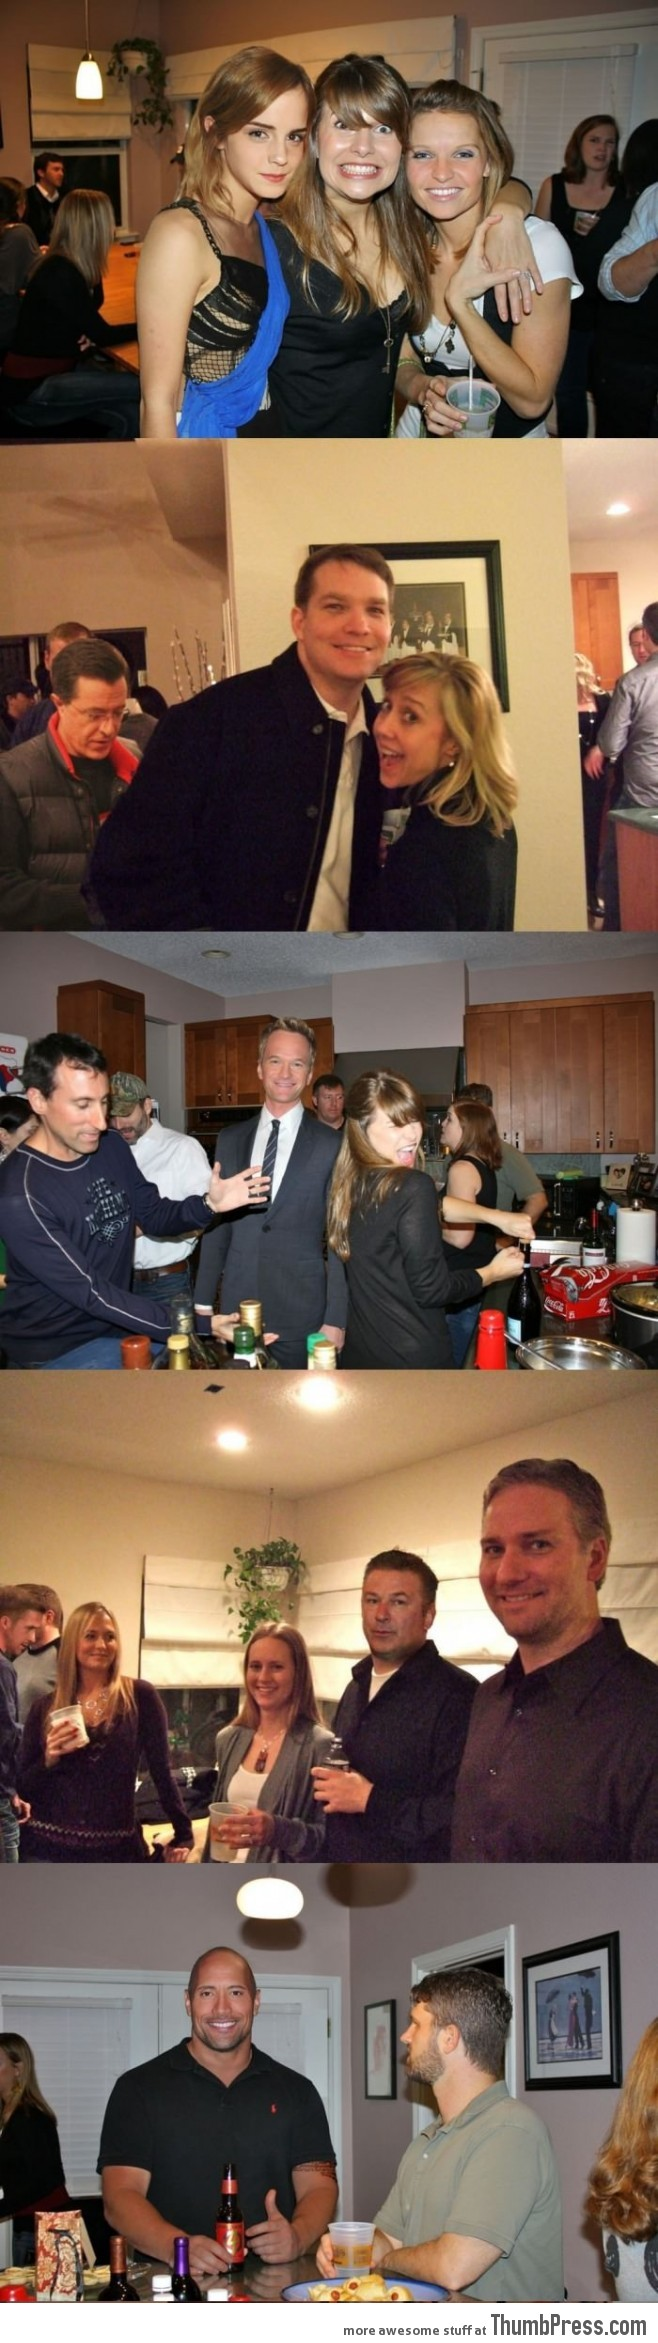 Photoshoping celebrities into holiday party photos